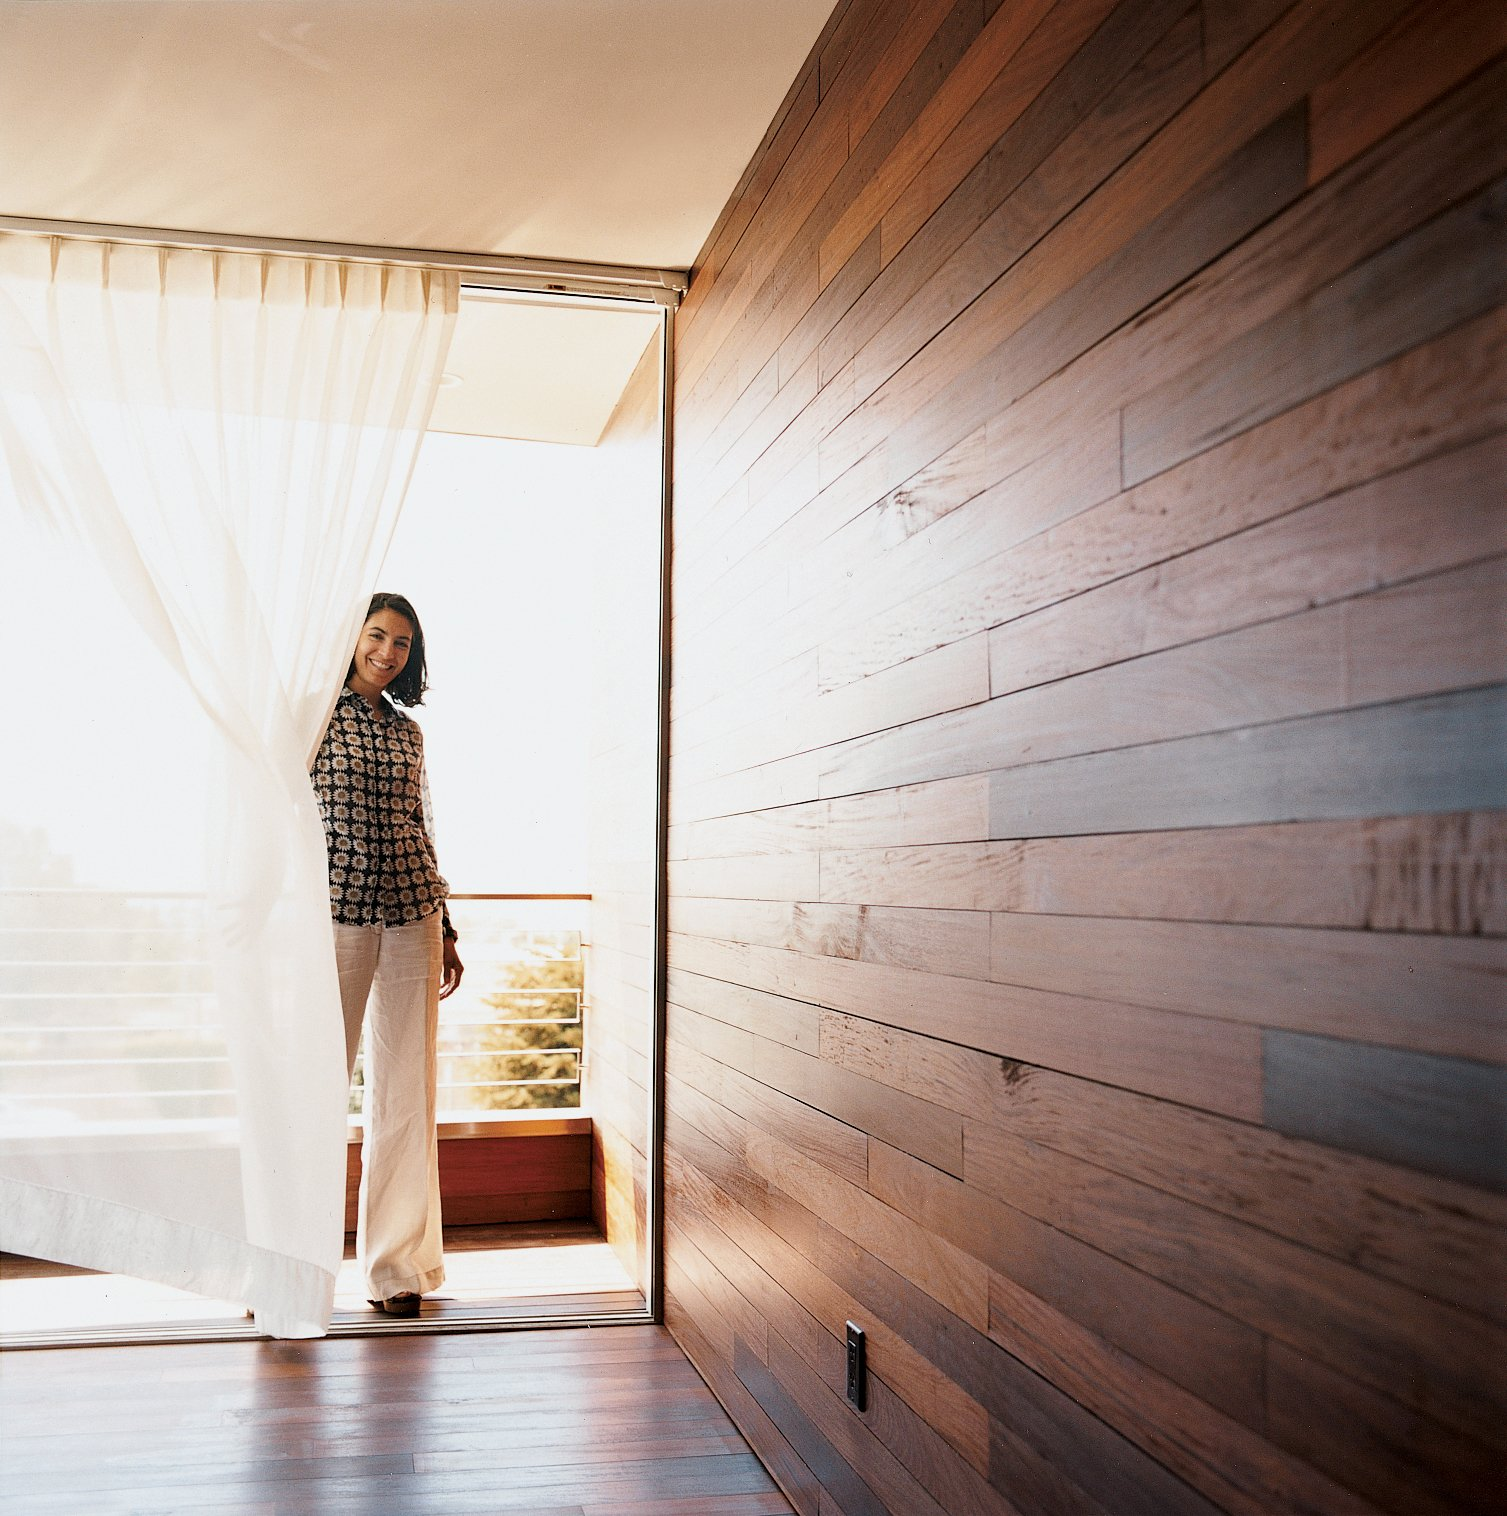 The Mariscals' bedroom opens out onto a small triangular patio. The exterior's ipe cladding also makes up the walls and floor of the master bedroom, further inviting the outside in. Tagged: Doors and Exterior.  Photo 7 of 7 in Sebastian Mariscal's Wood Architecture from Double the Pleasure